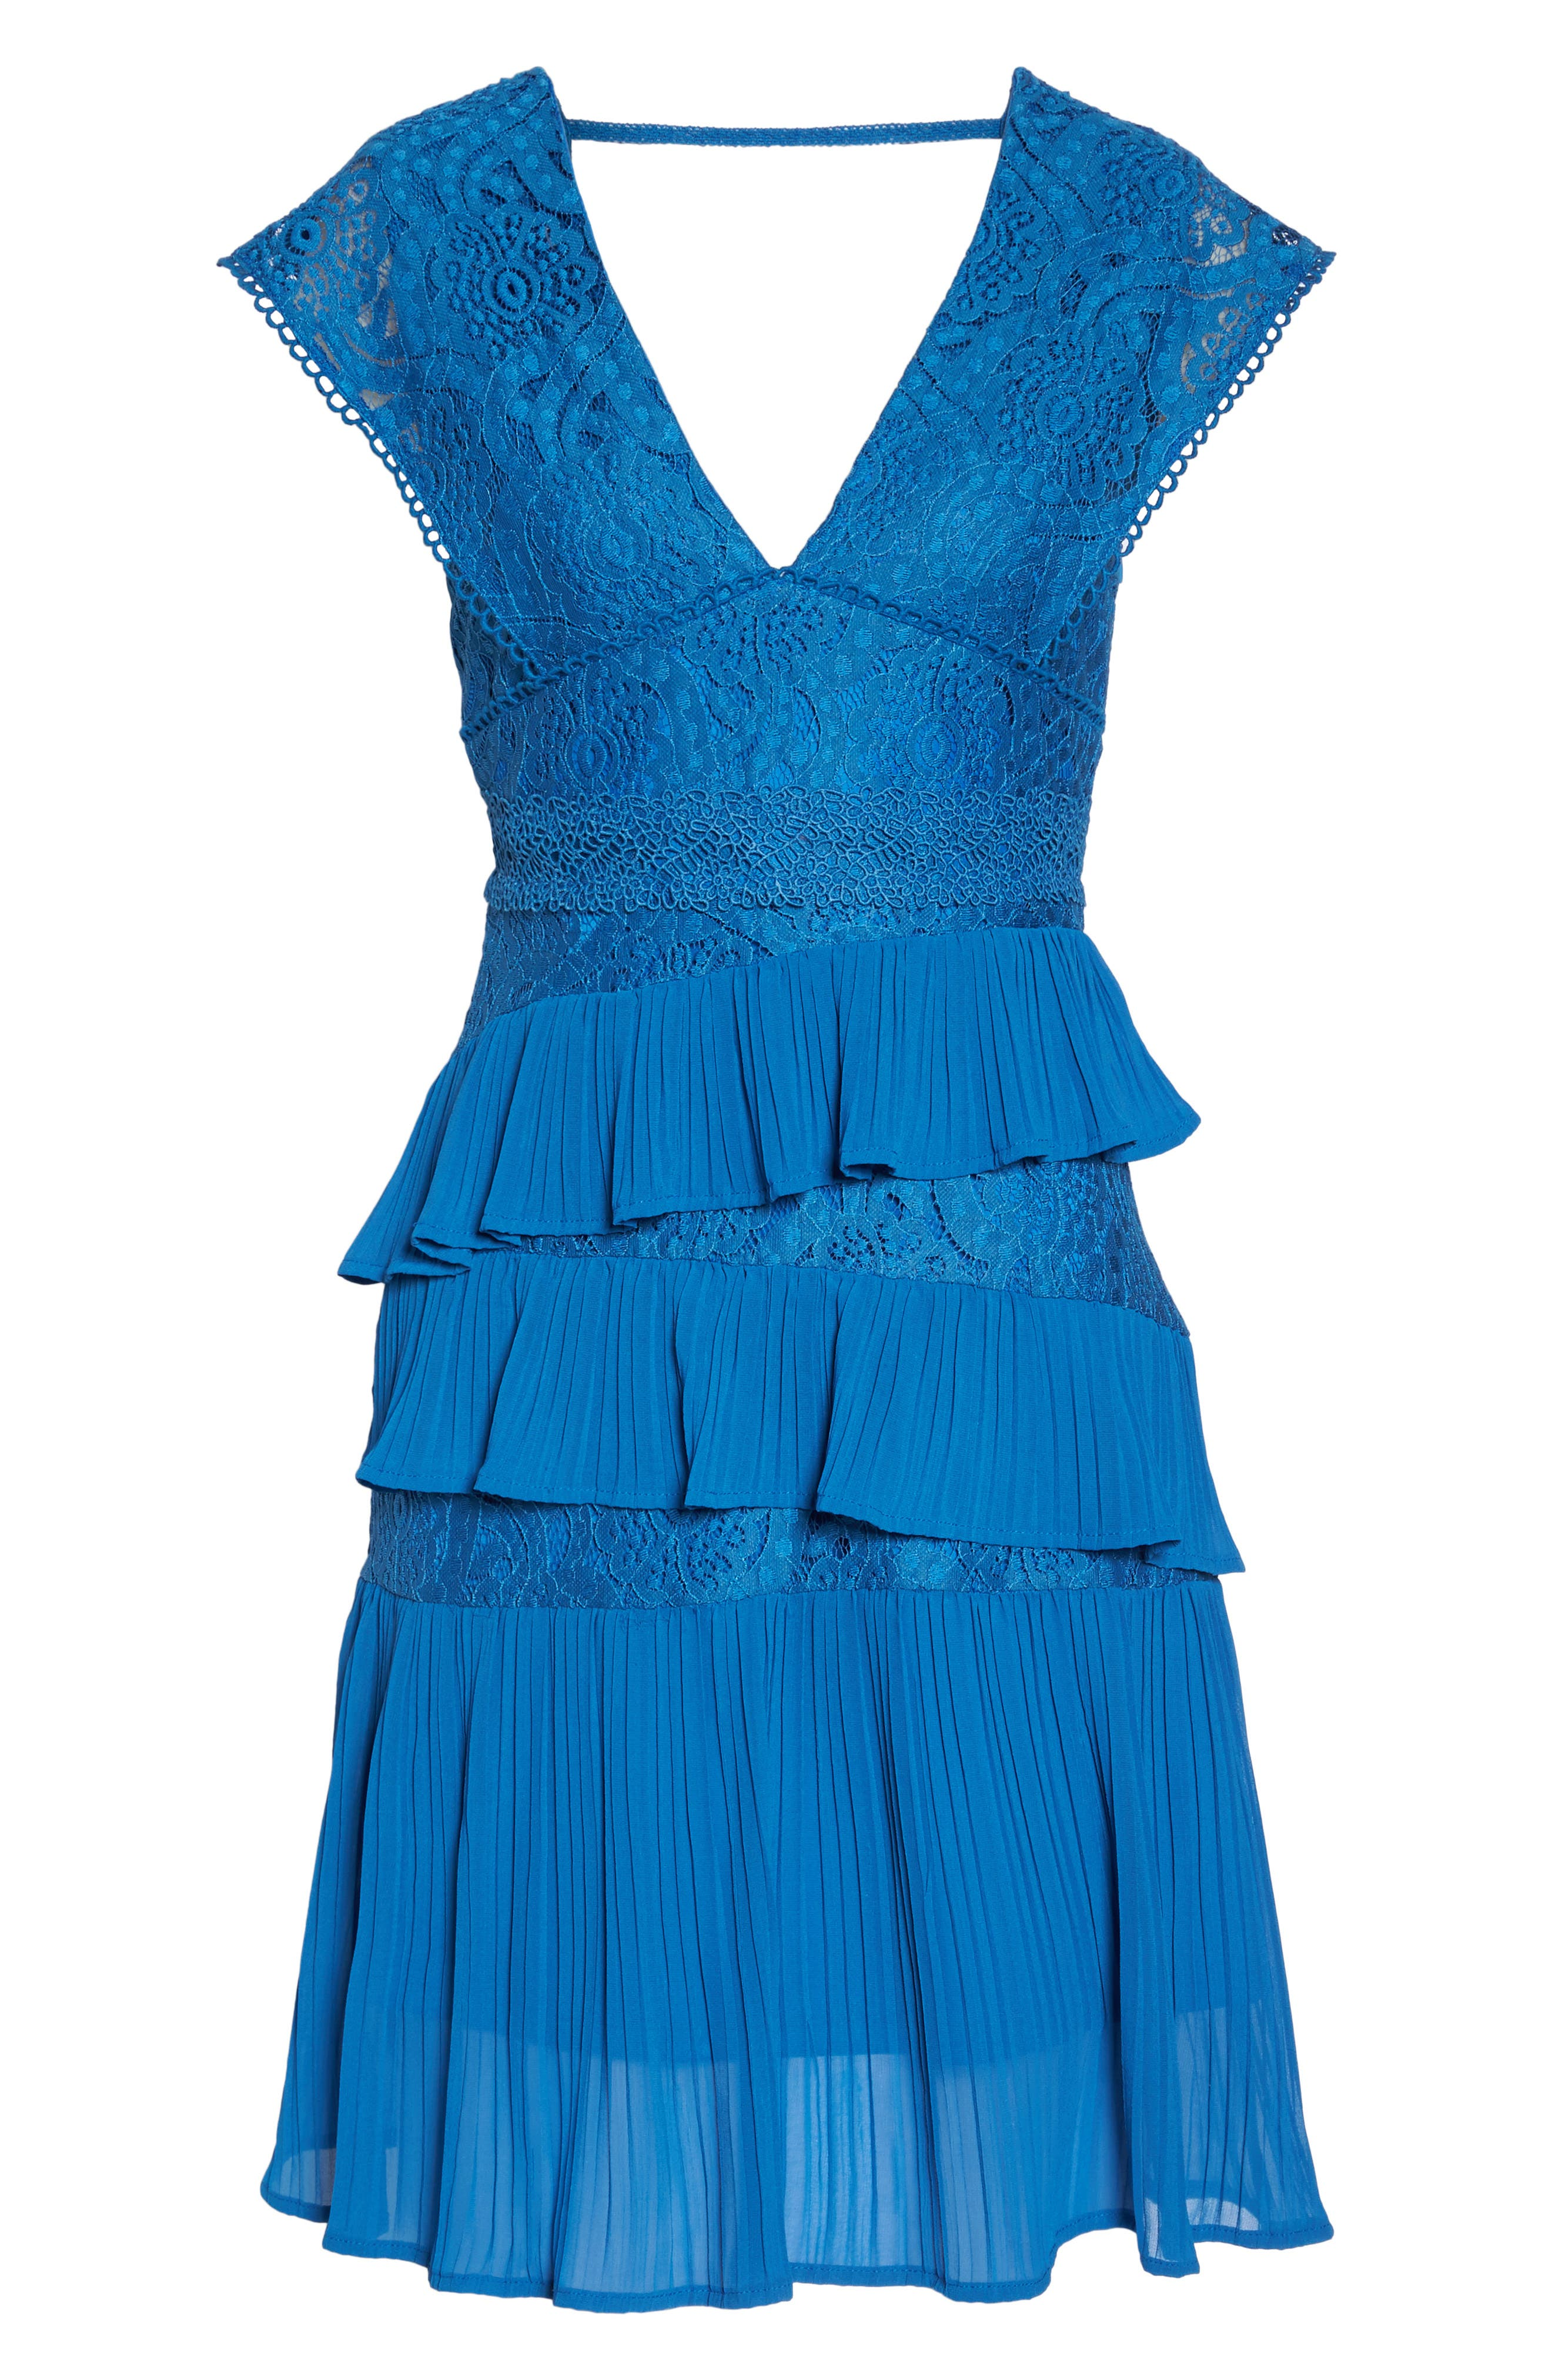 Clover Lace Tiered Dress,                             Alternate thumbnail 6, color,                             Navy